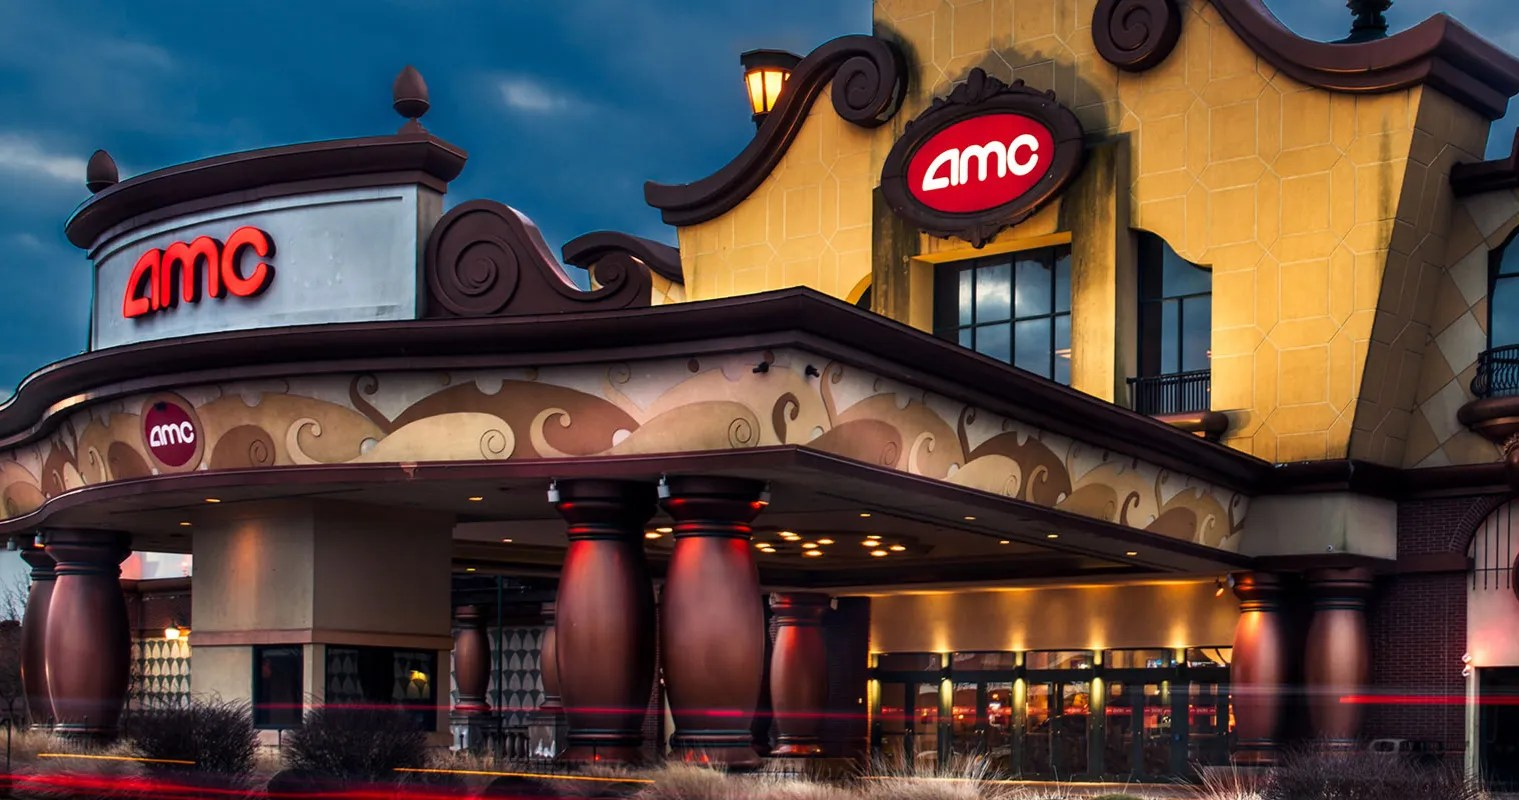 AMC Theatres Could Benefit from Bankruptcy Suggest Box Office Analysts